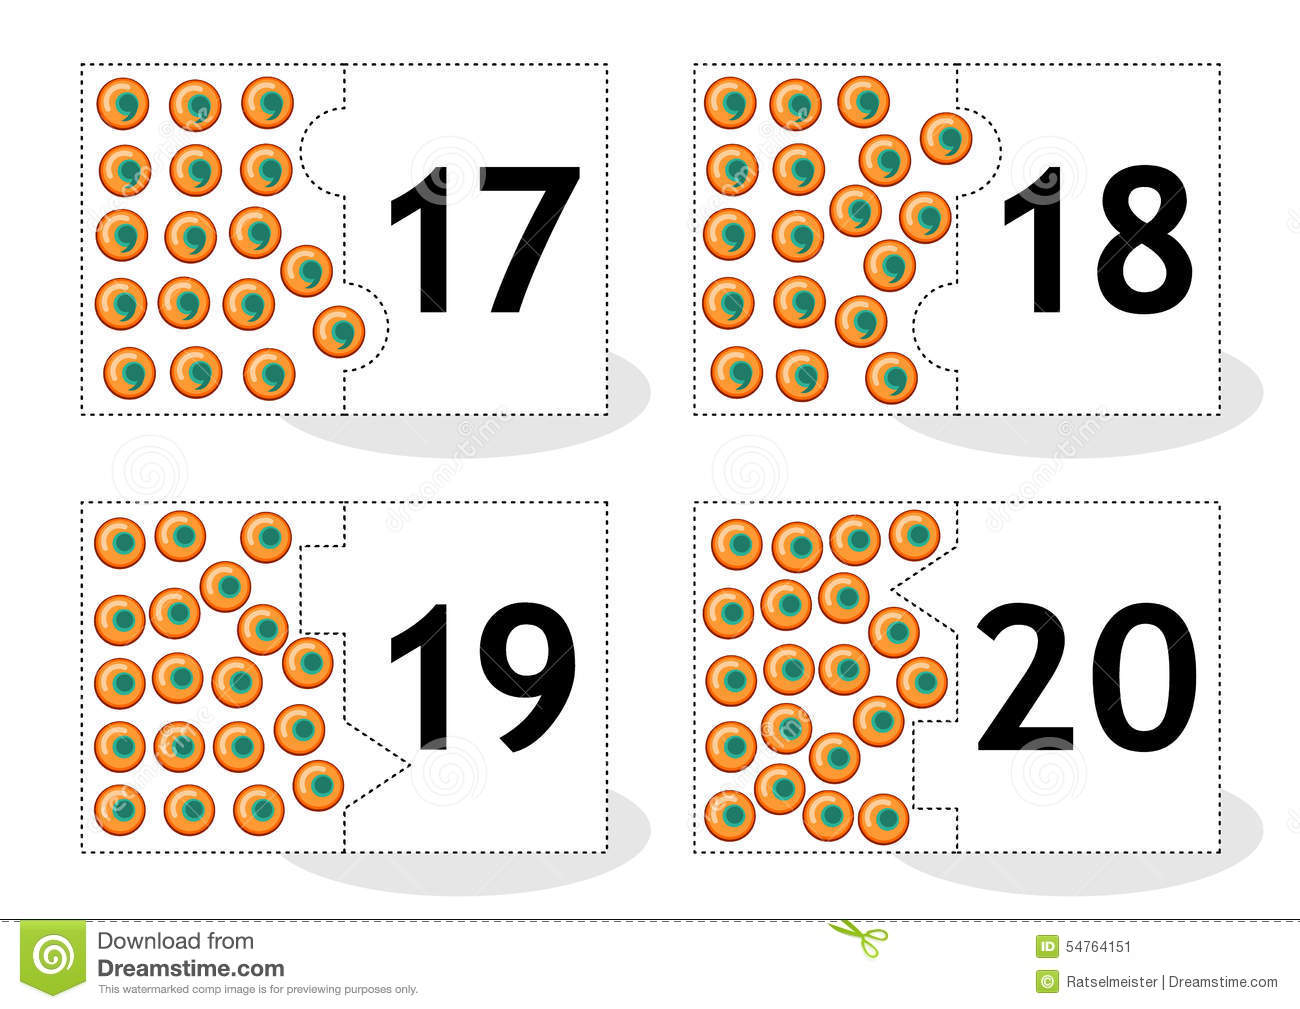 Learn Counting Puzzle Cards With Frog Eggs Numbers 17 20